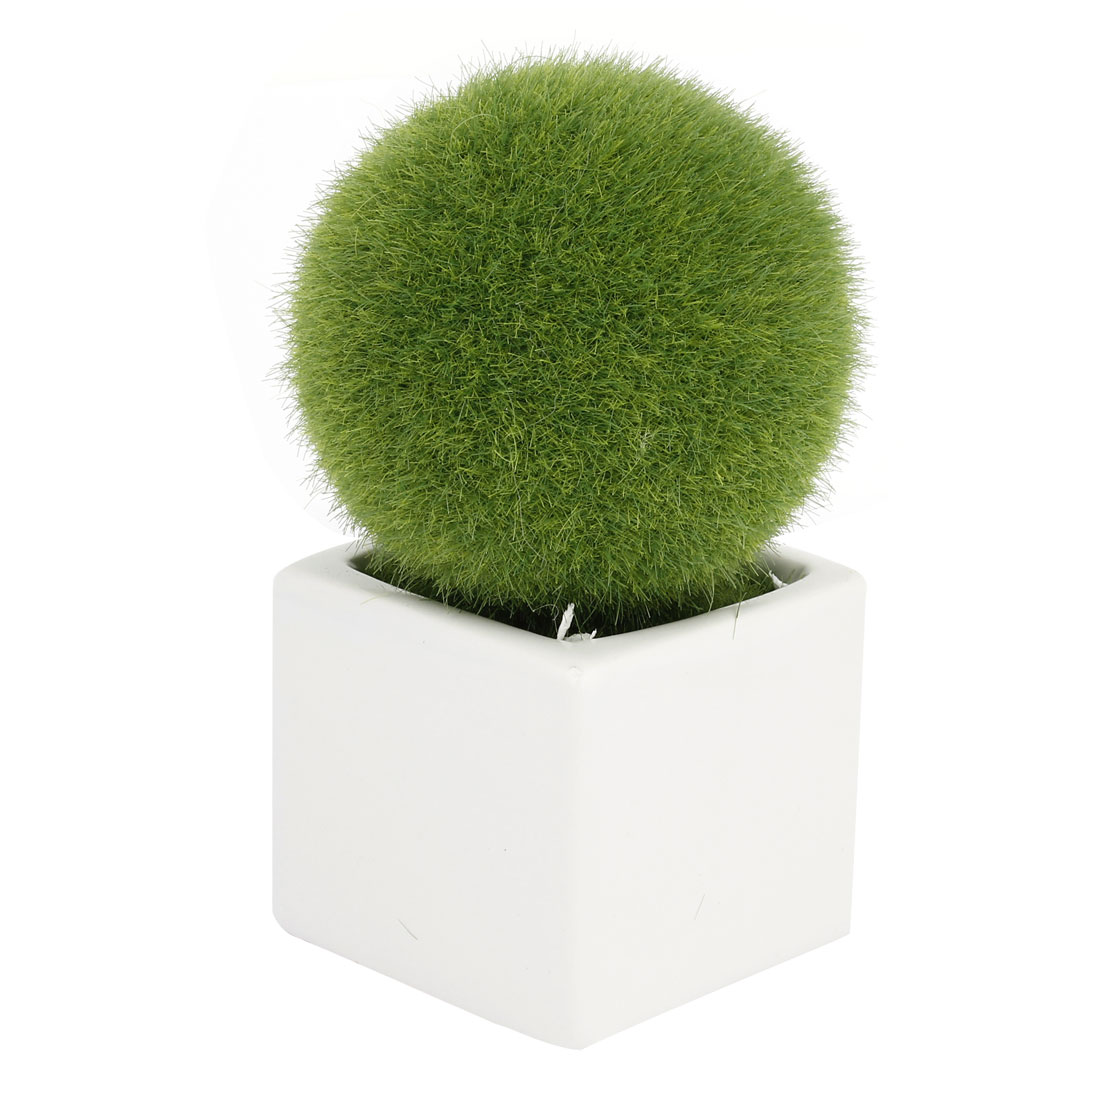 Home Office Table Ornamental Plant Plastic Grass Ball Pot